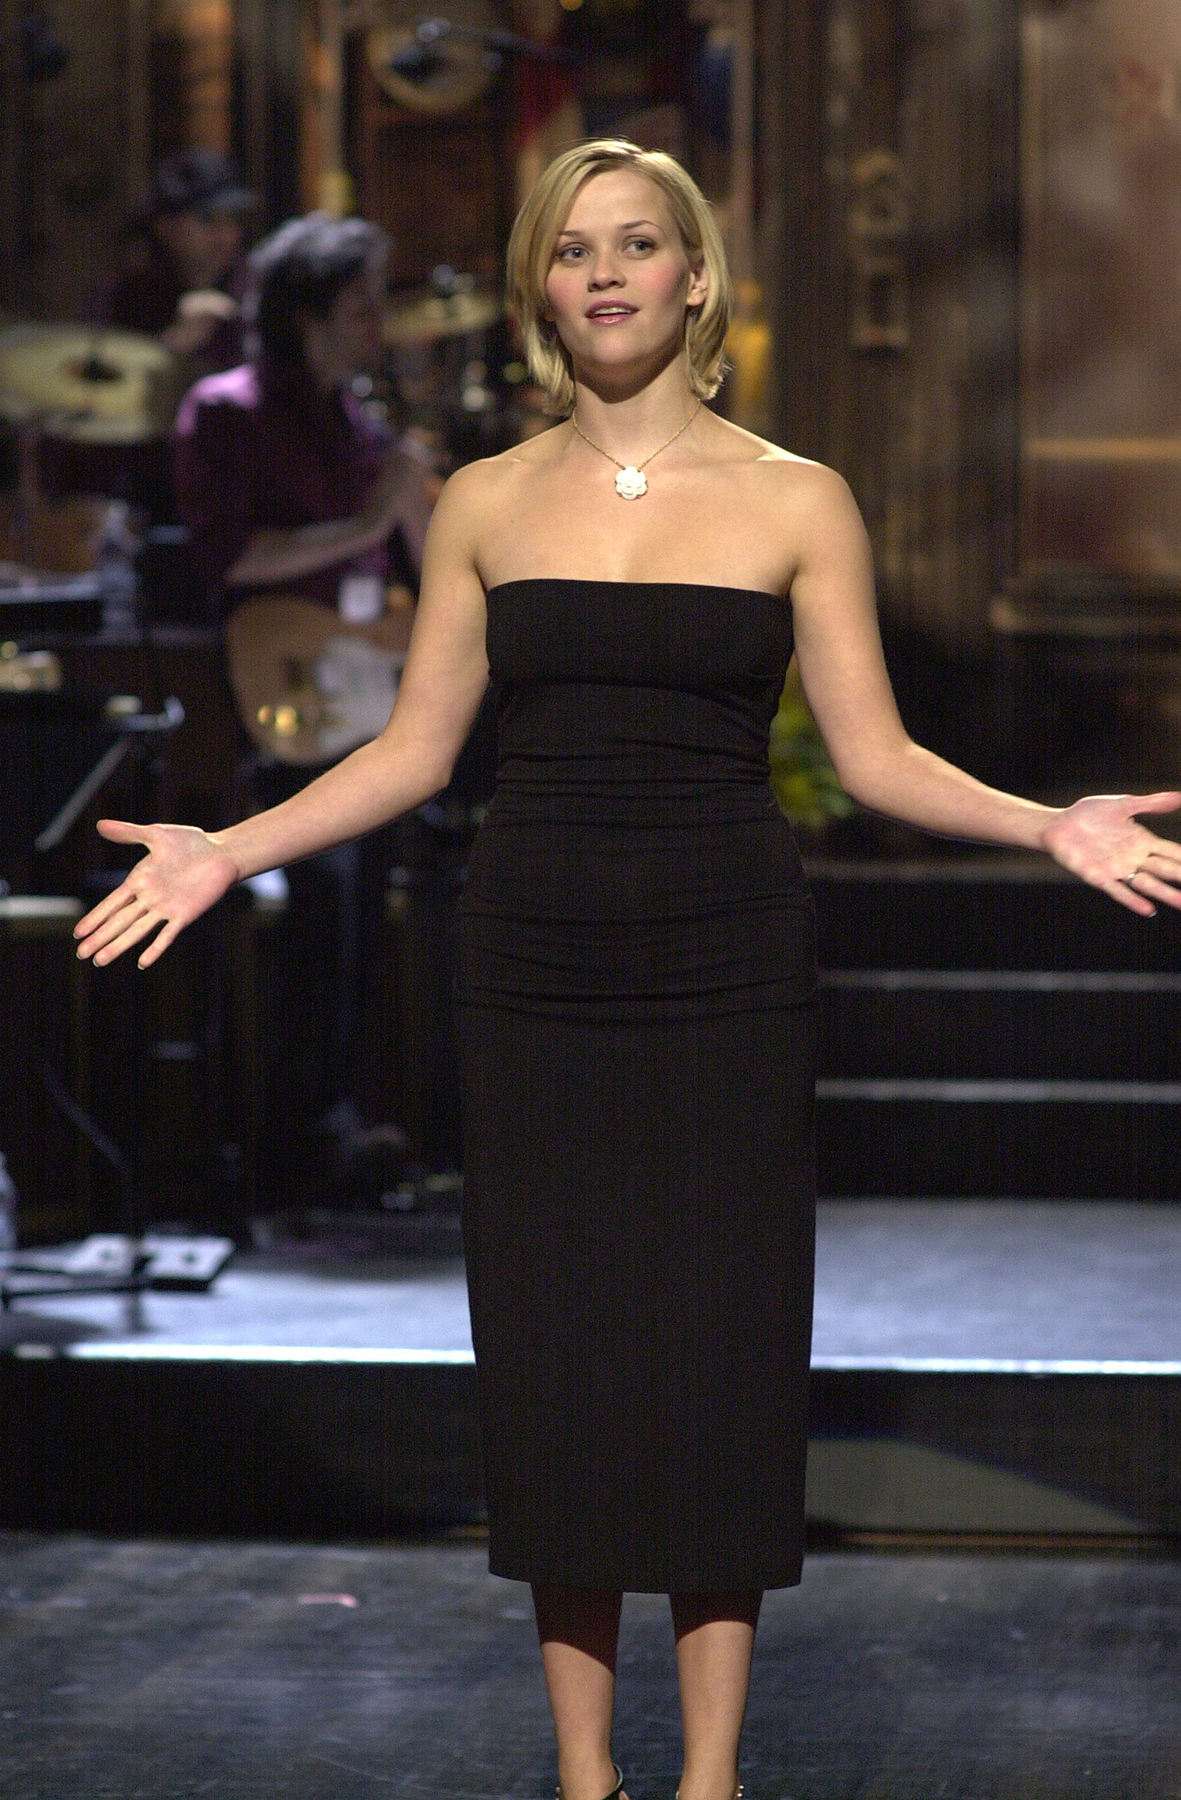 SATURDAY NIGHT LIVE -- Episode 1 -- Air Date 09/29/2001 -- Pictured: Host Reese Witherspoon during the monologue on September 29, 2001 -- Photo by: Dana Edelson/NBCU Photo Bank